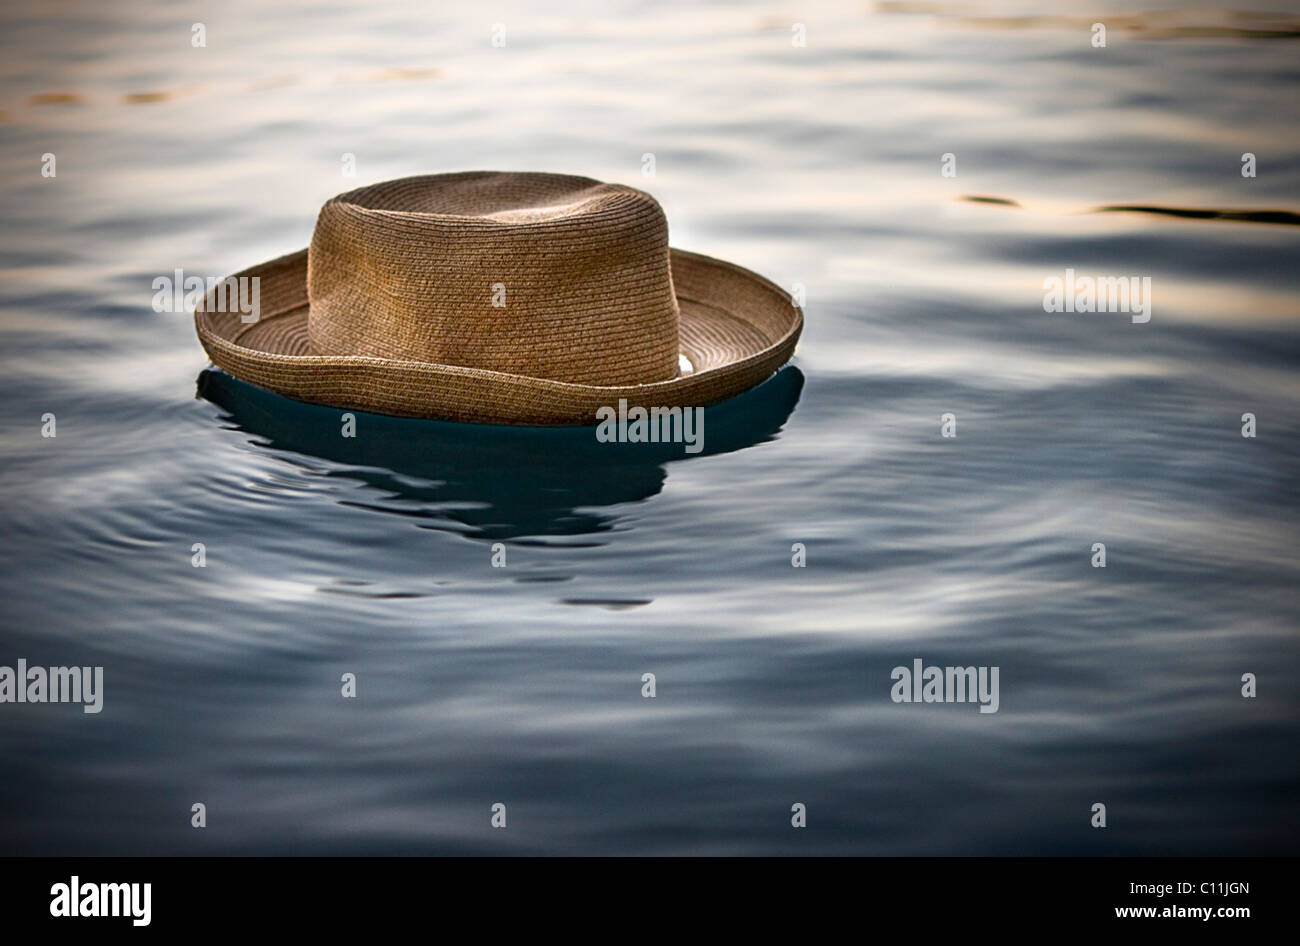 A straw hat floats on the top of a pool of water. - Stock Image